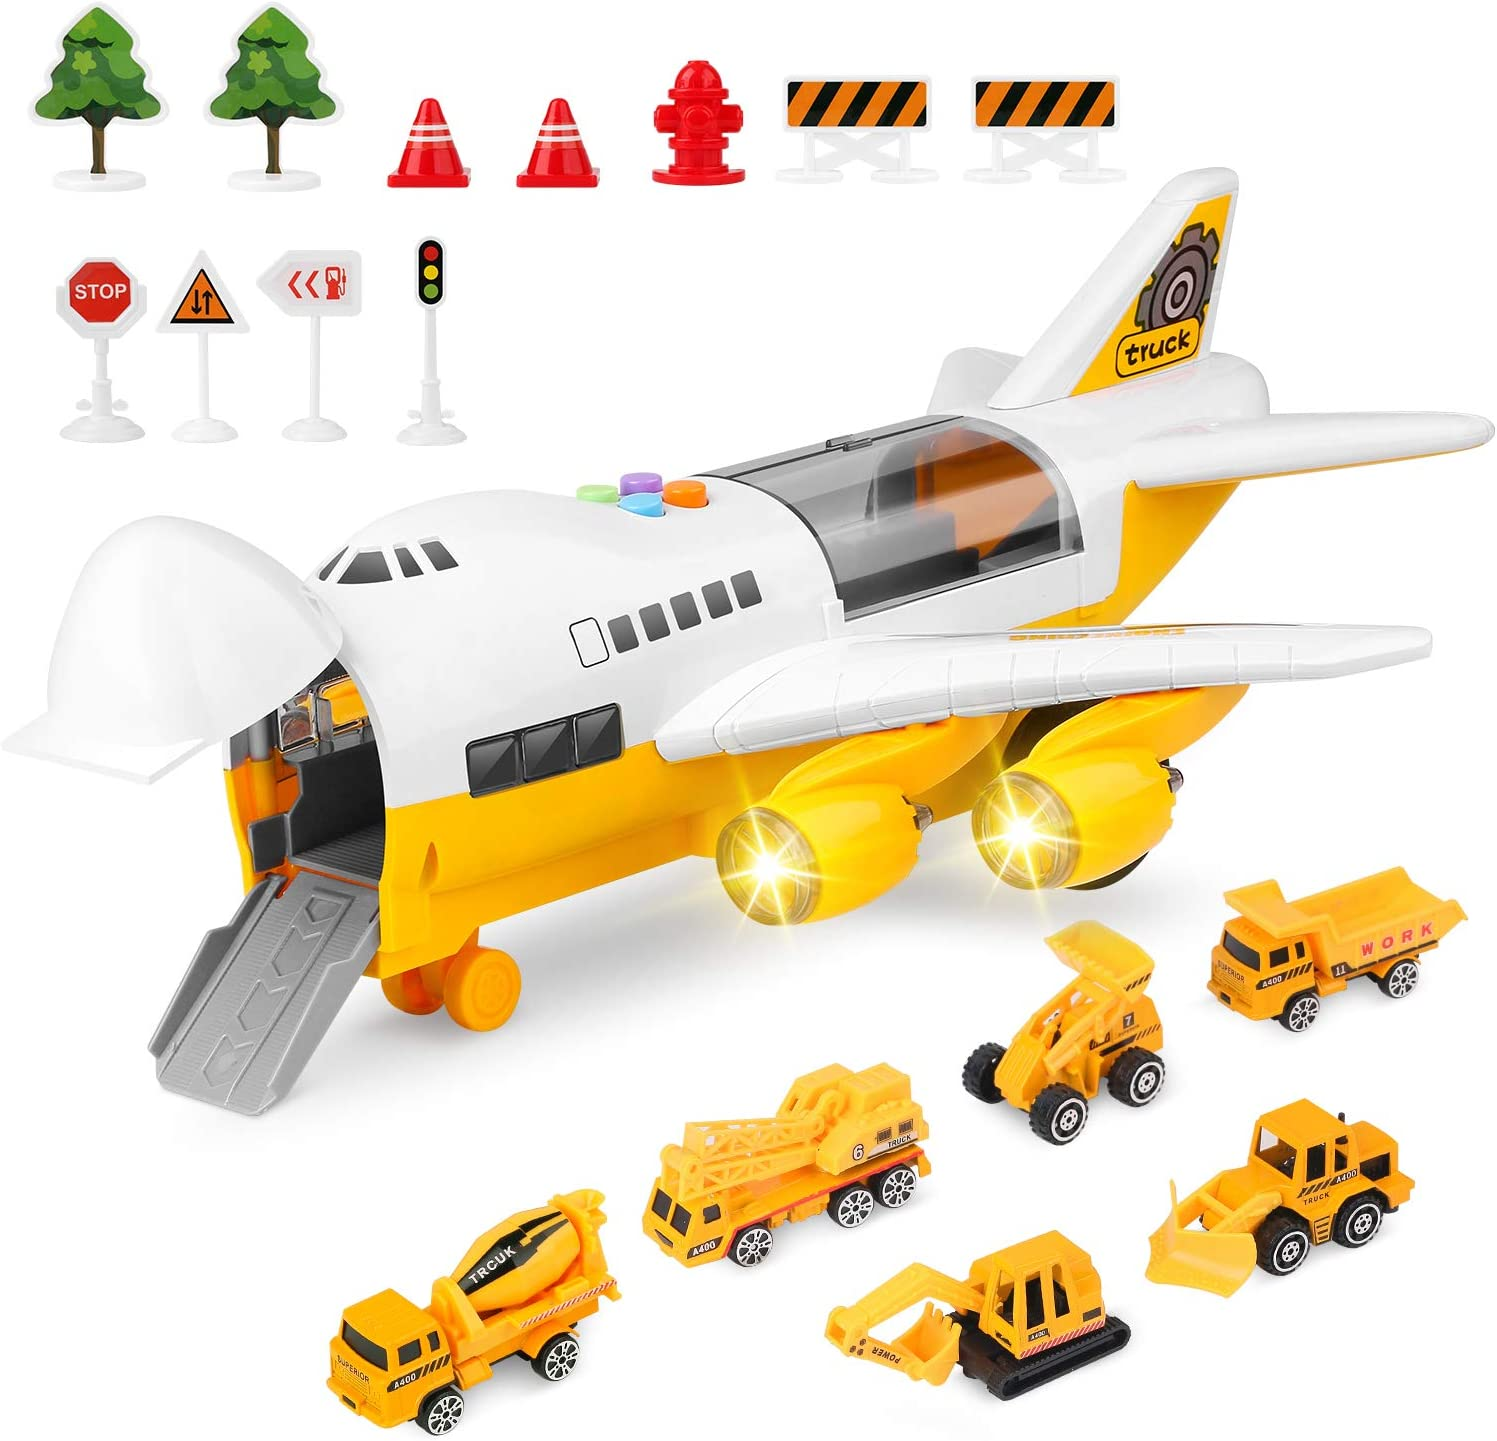 Car Toys Set yellow engineering truck 11Road Signs Large Plane Engineering Vehicles for Girls Toddler Boys Girls Age 3+ Educational Vehicle Fire Truck Transport Airplane Toy,4 Alloy Police Car